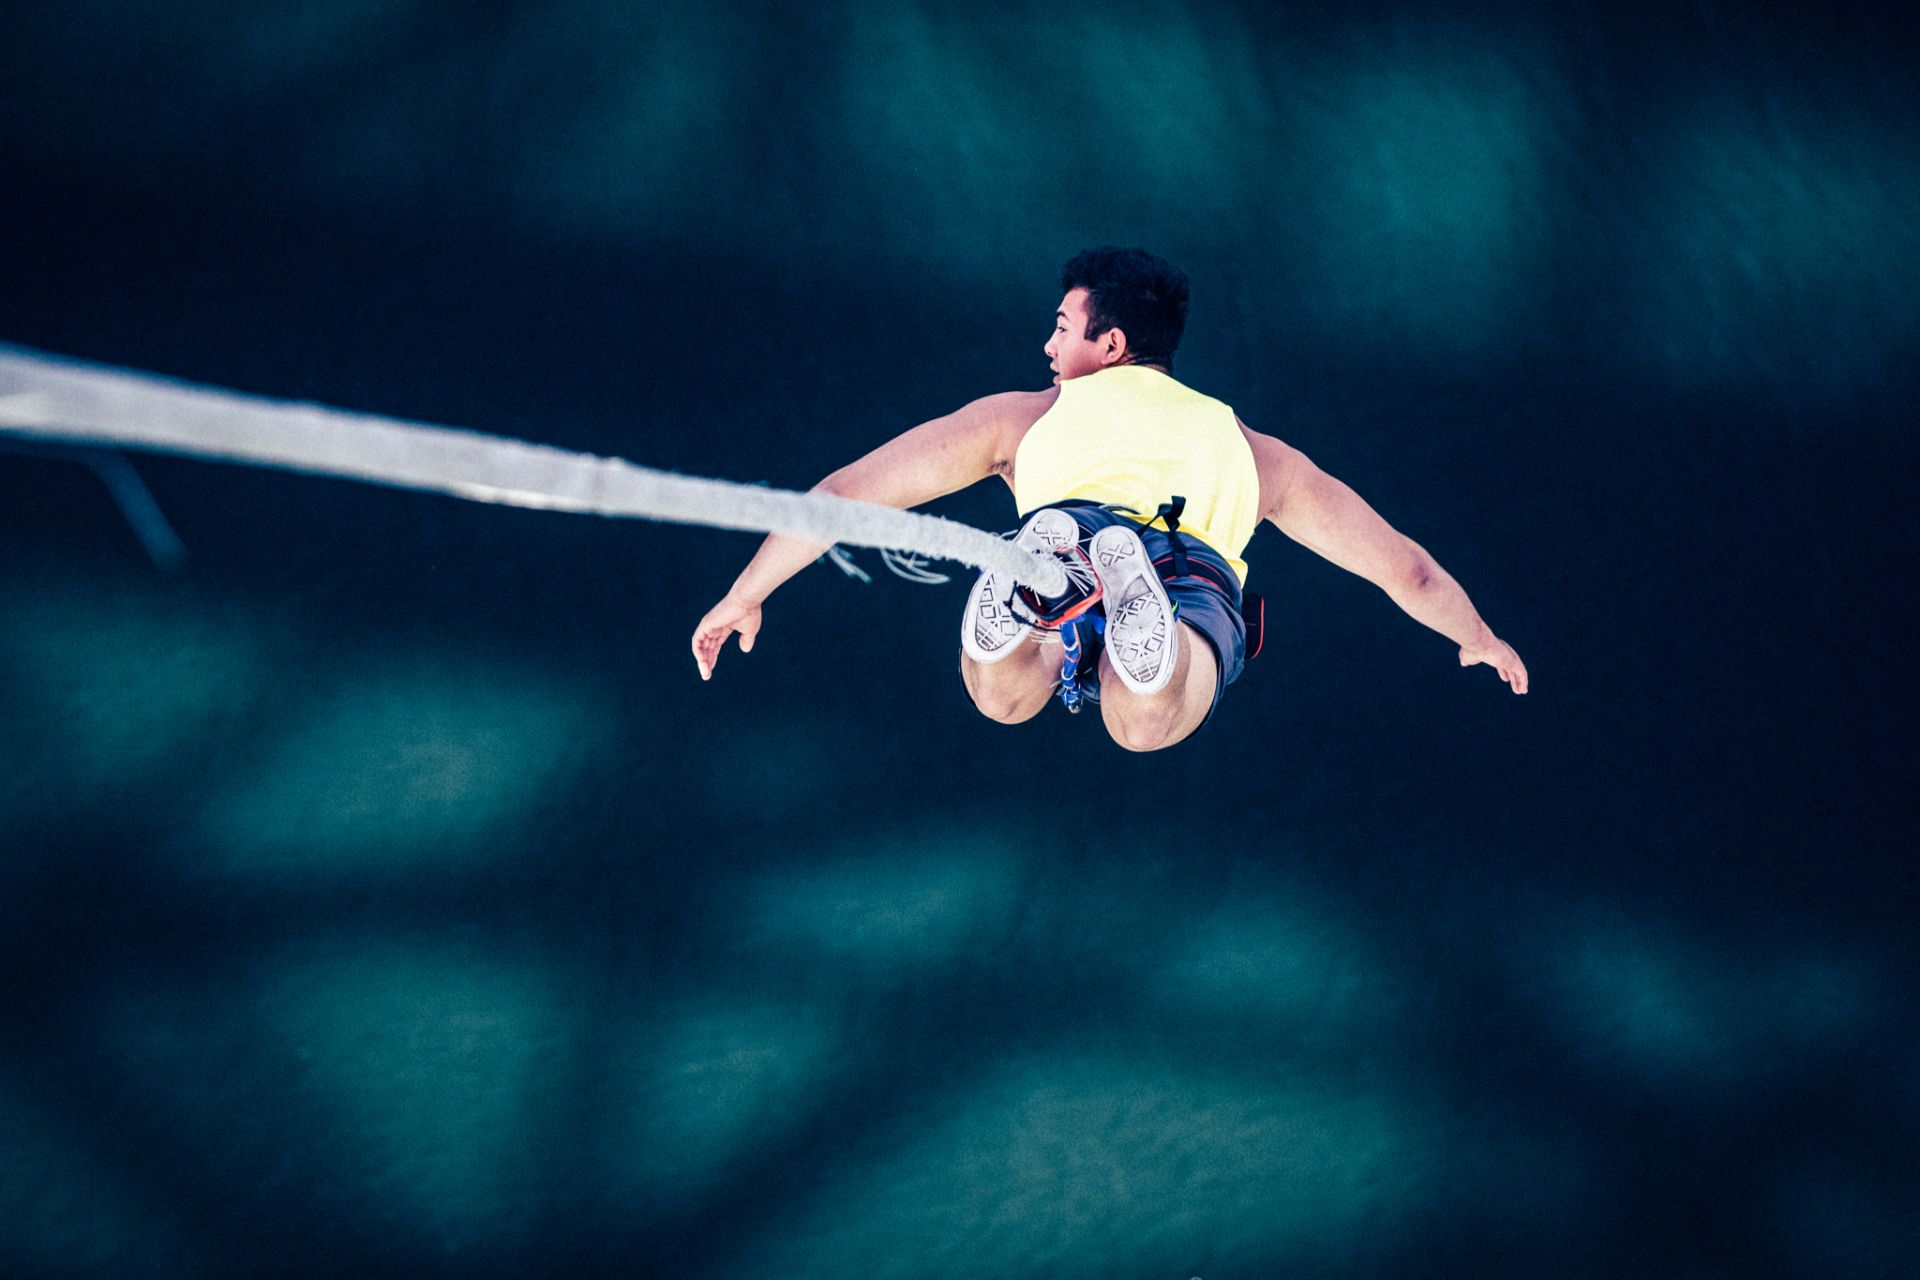 guy-jumping-over-water-bungee-jumping-uk